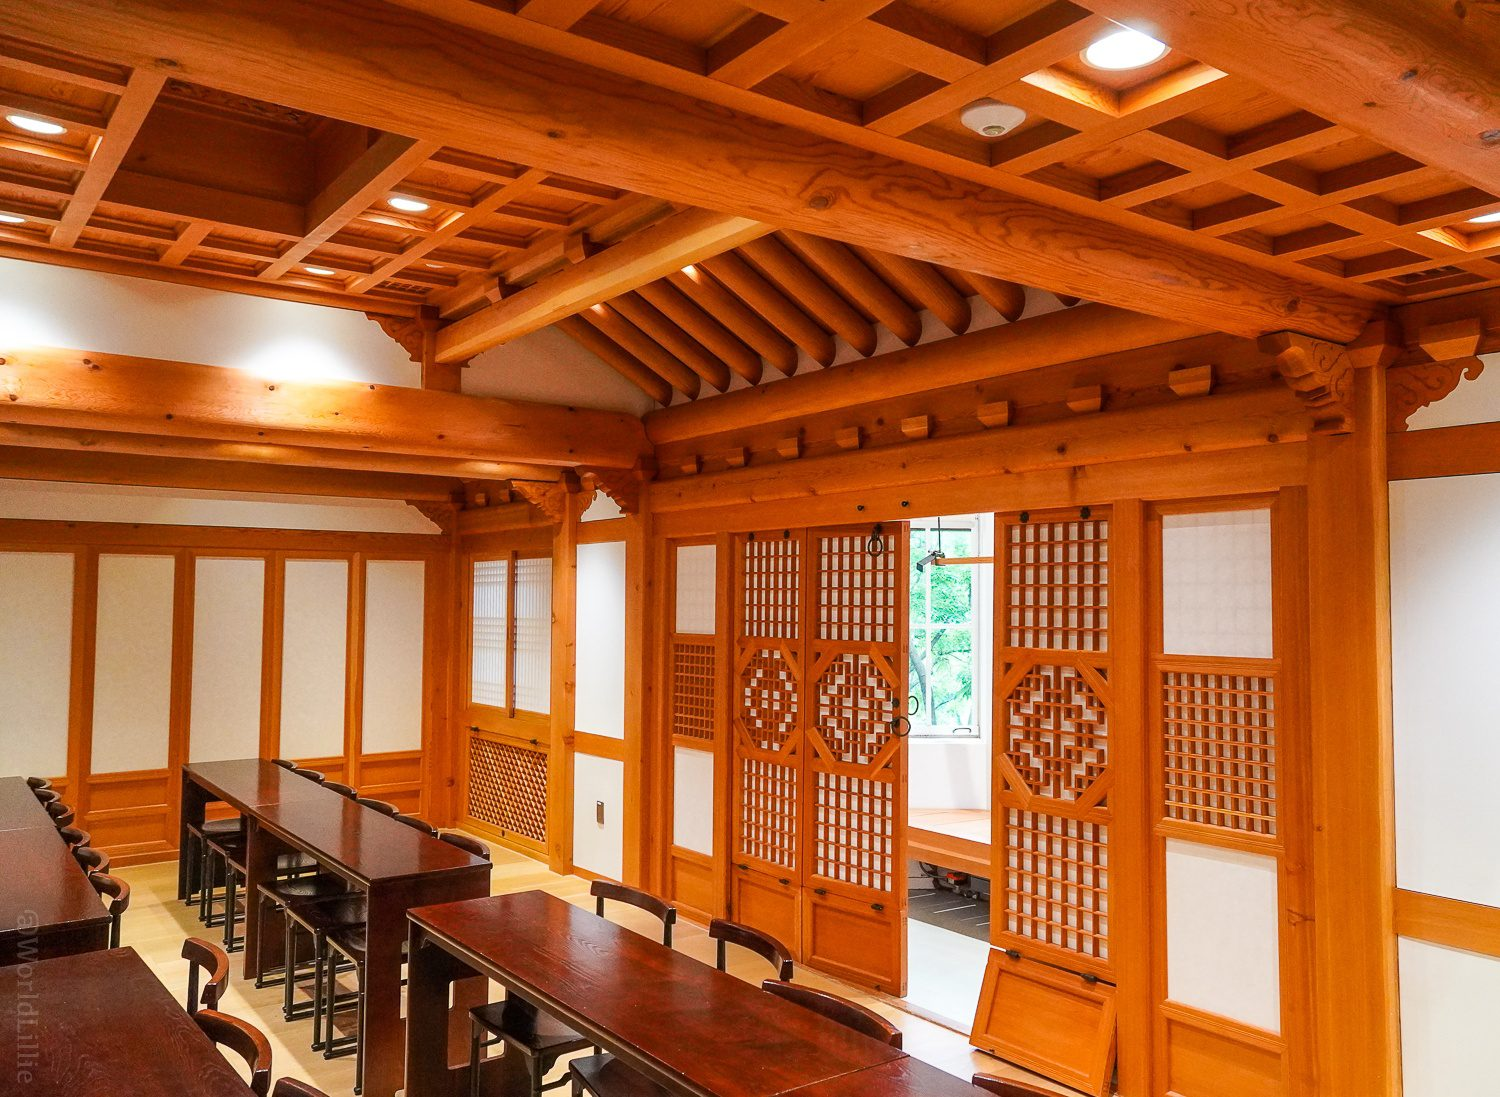 The Korean Heritage Room.